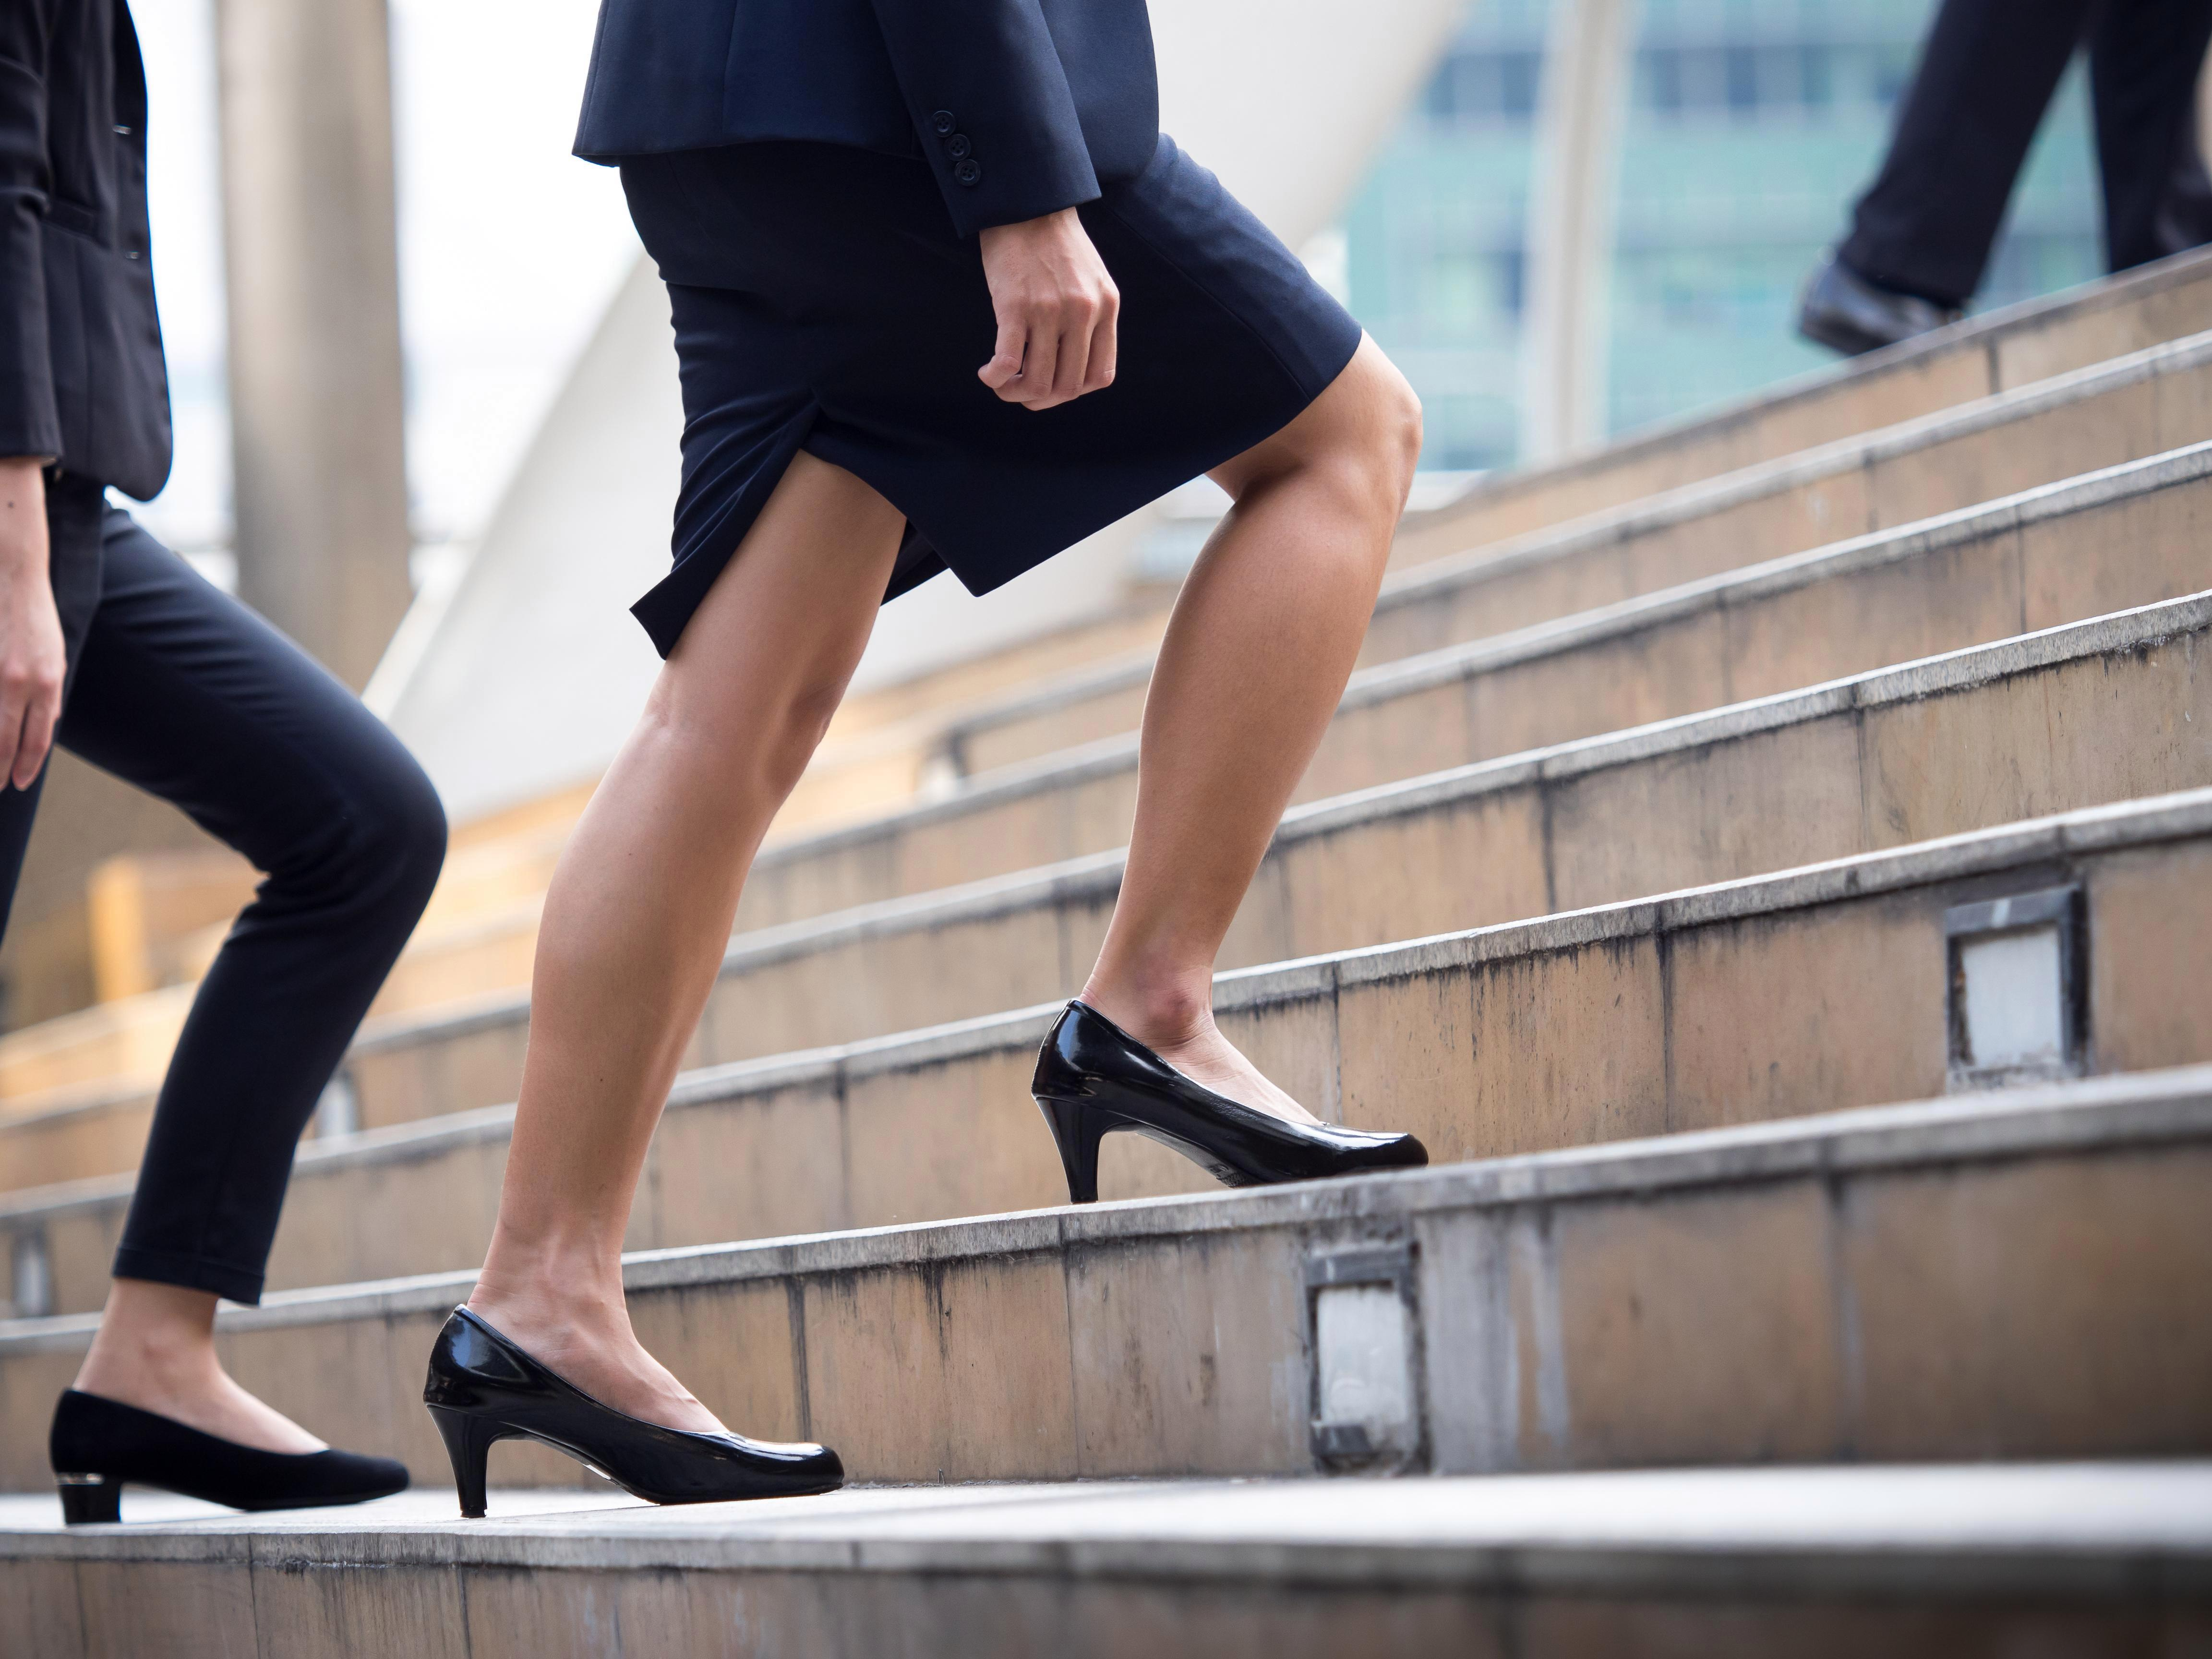 Chinese workers FINED if they walk fewer than 180,000 steps a month